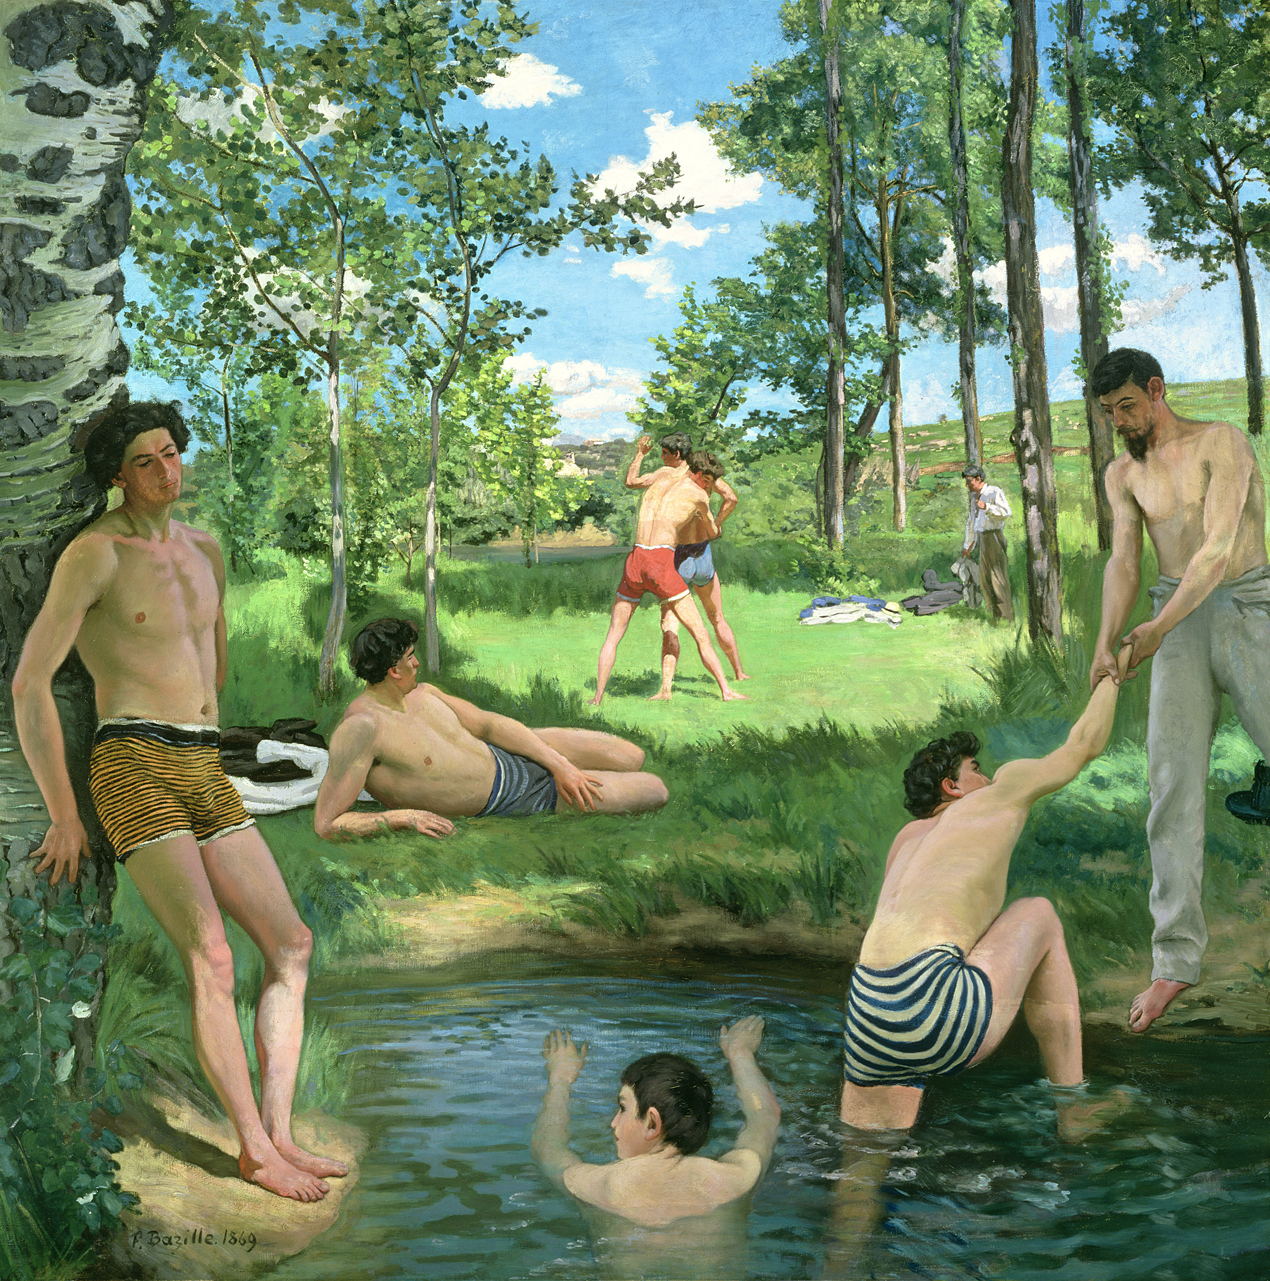 Nineteenth-century painting of young men at a watering hole.